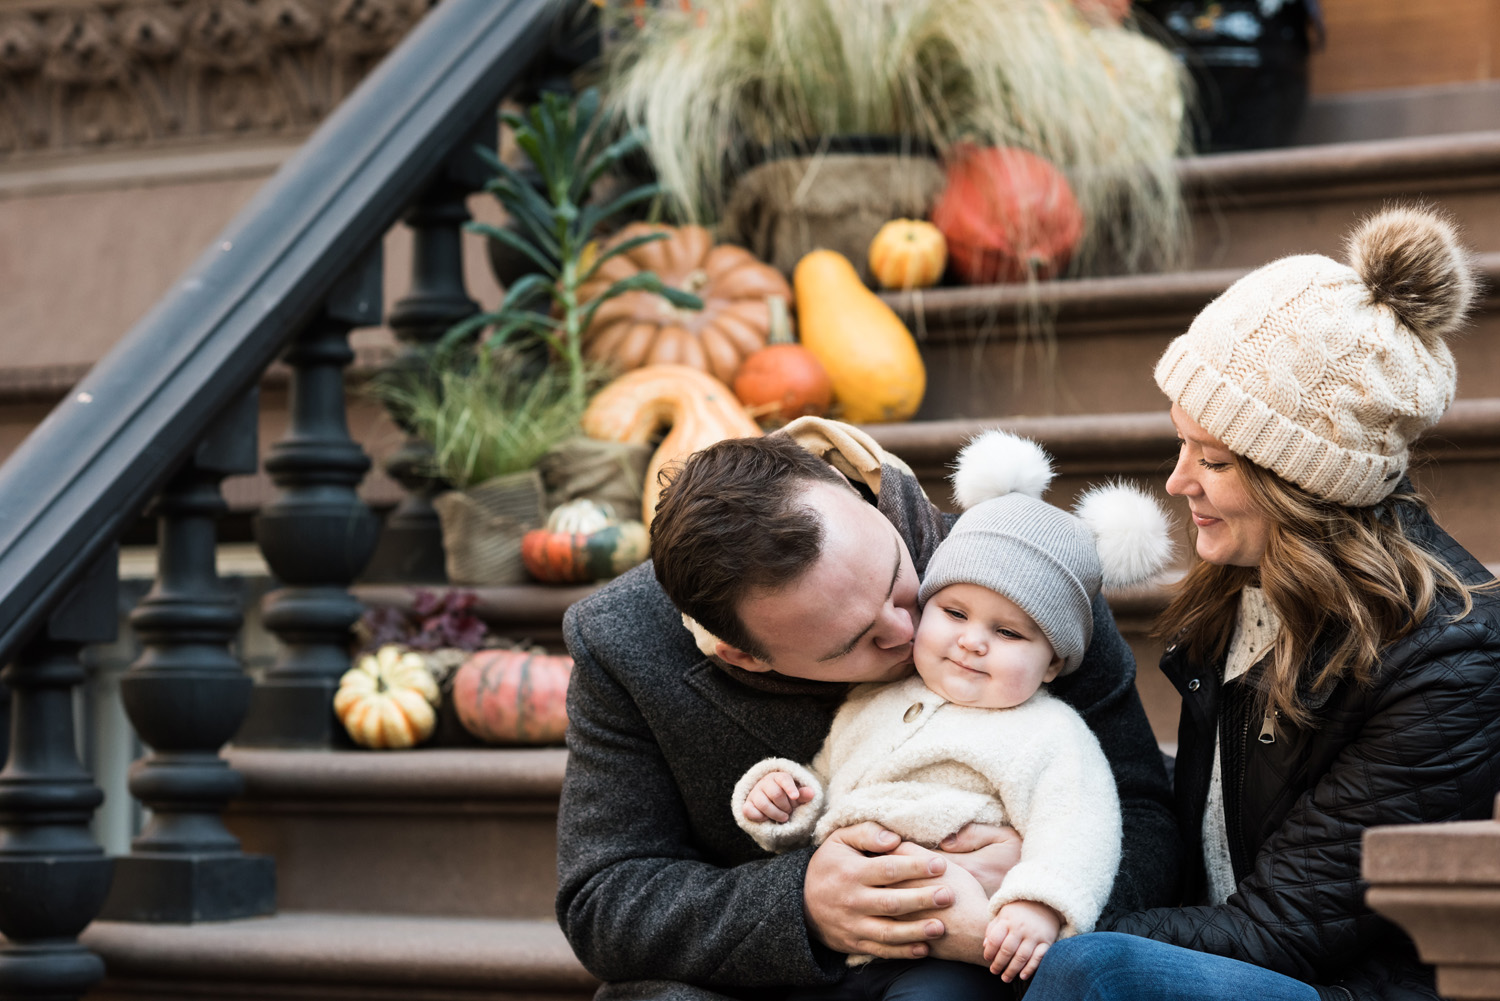 nyc family photographer-11112017_48.jpg